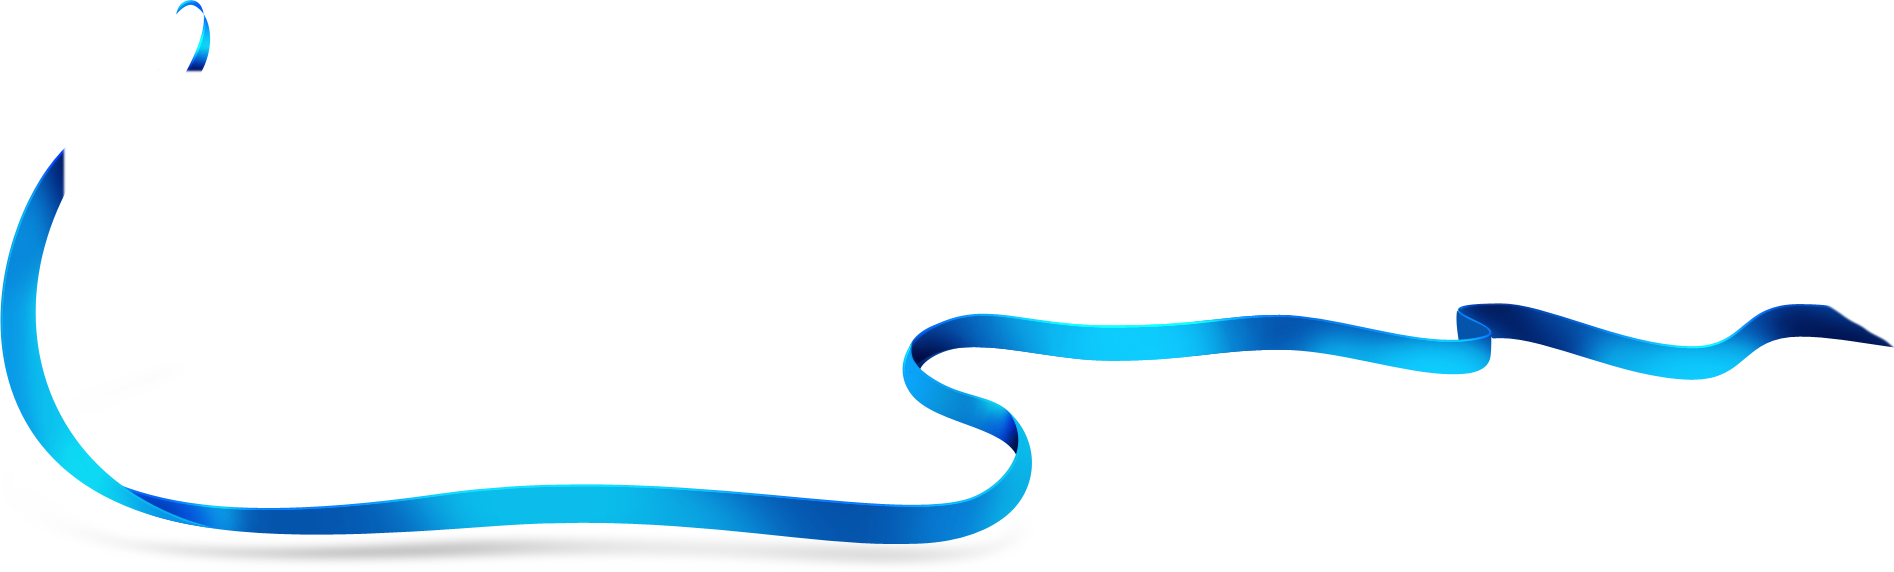 Free Flowing Ribbon Png, Download Free Clip Art, Free Clip Art on.